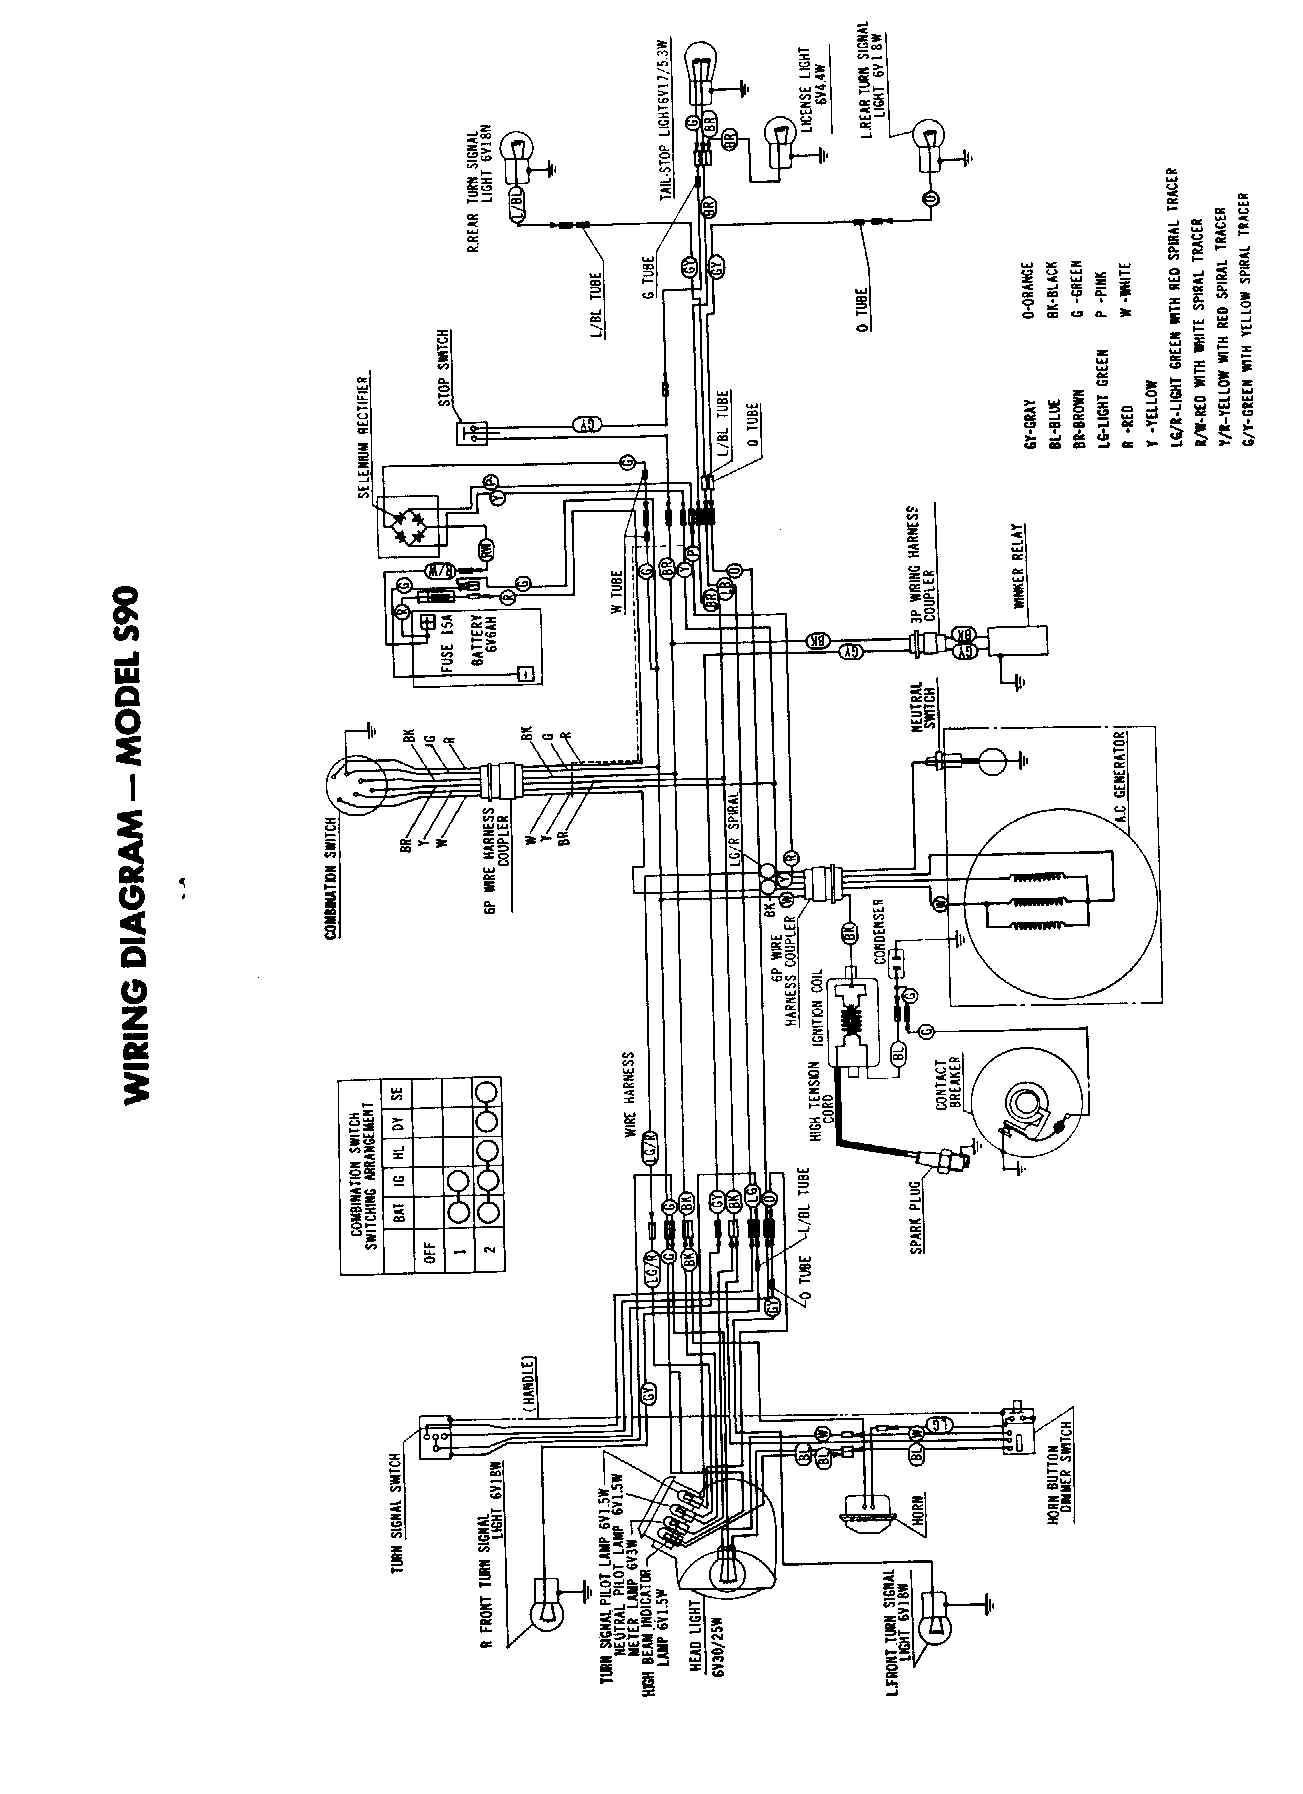 Honda Xl250s Wiring Diagram Free Engine Image